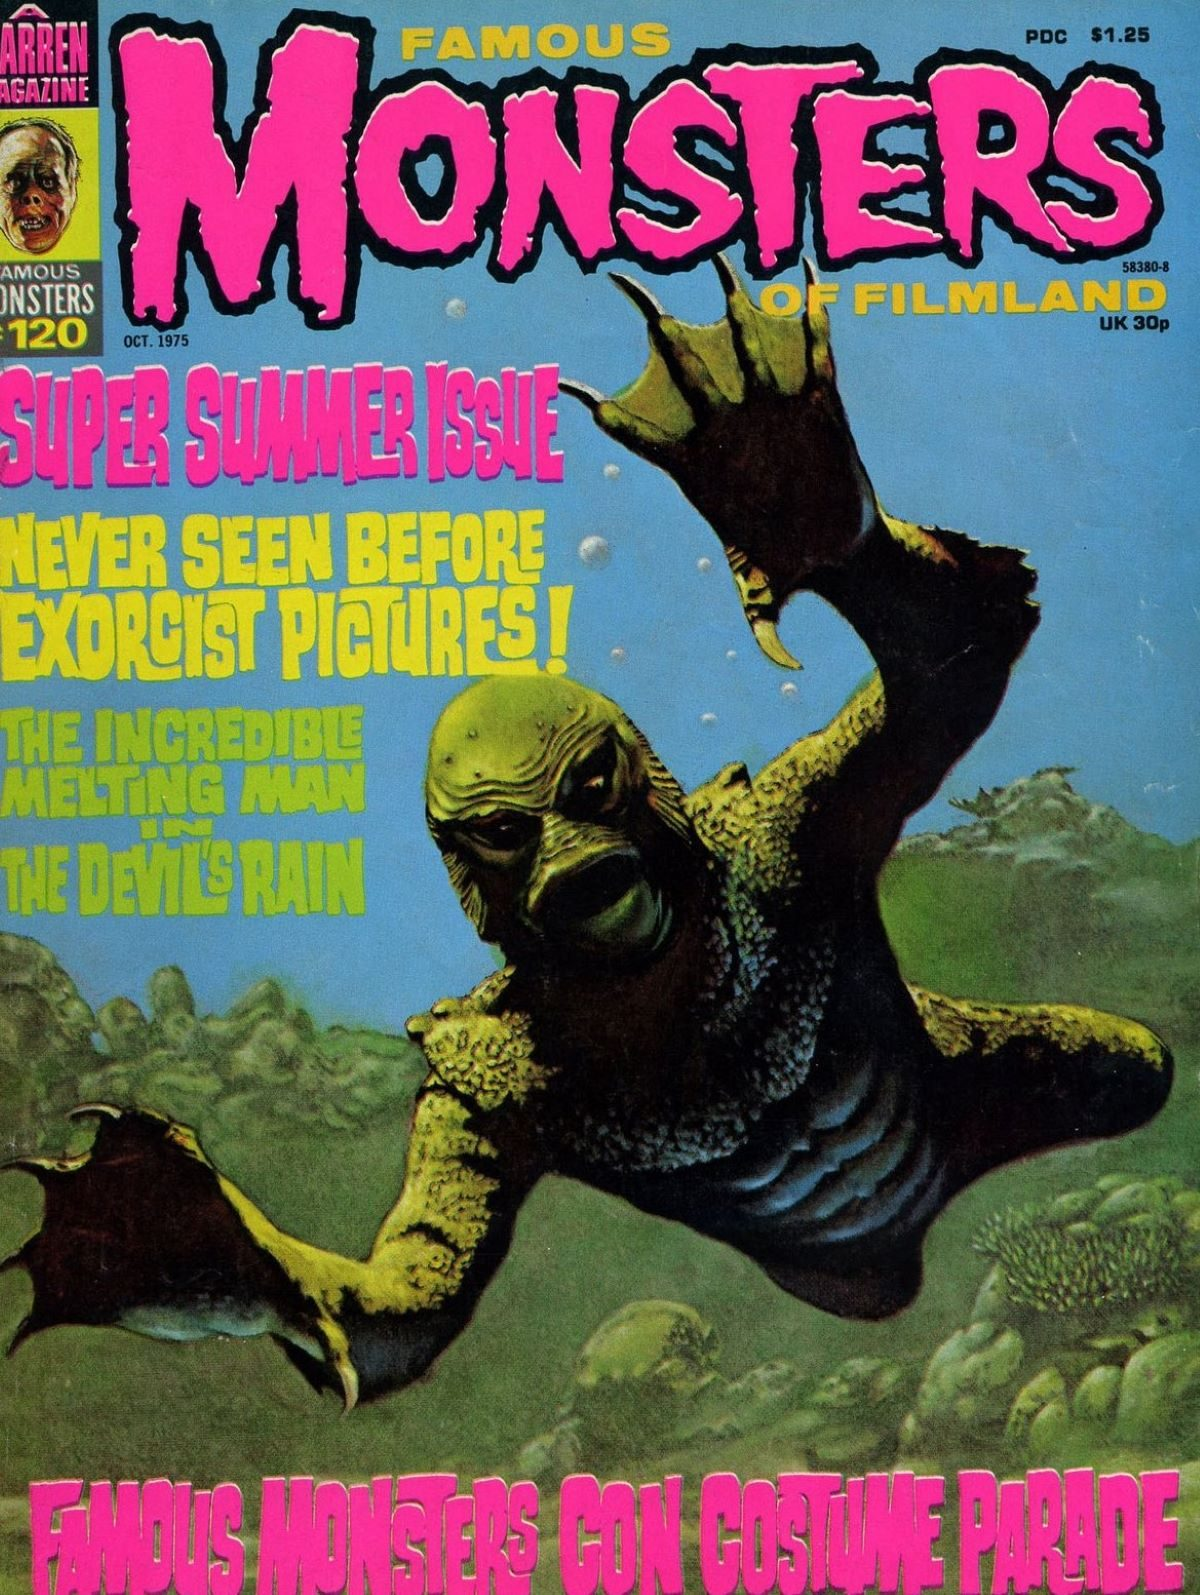 Famous Monsters of Filmland, magazine, horror films, Creature from the Black Lagoon, 1970s